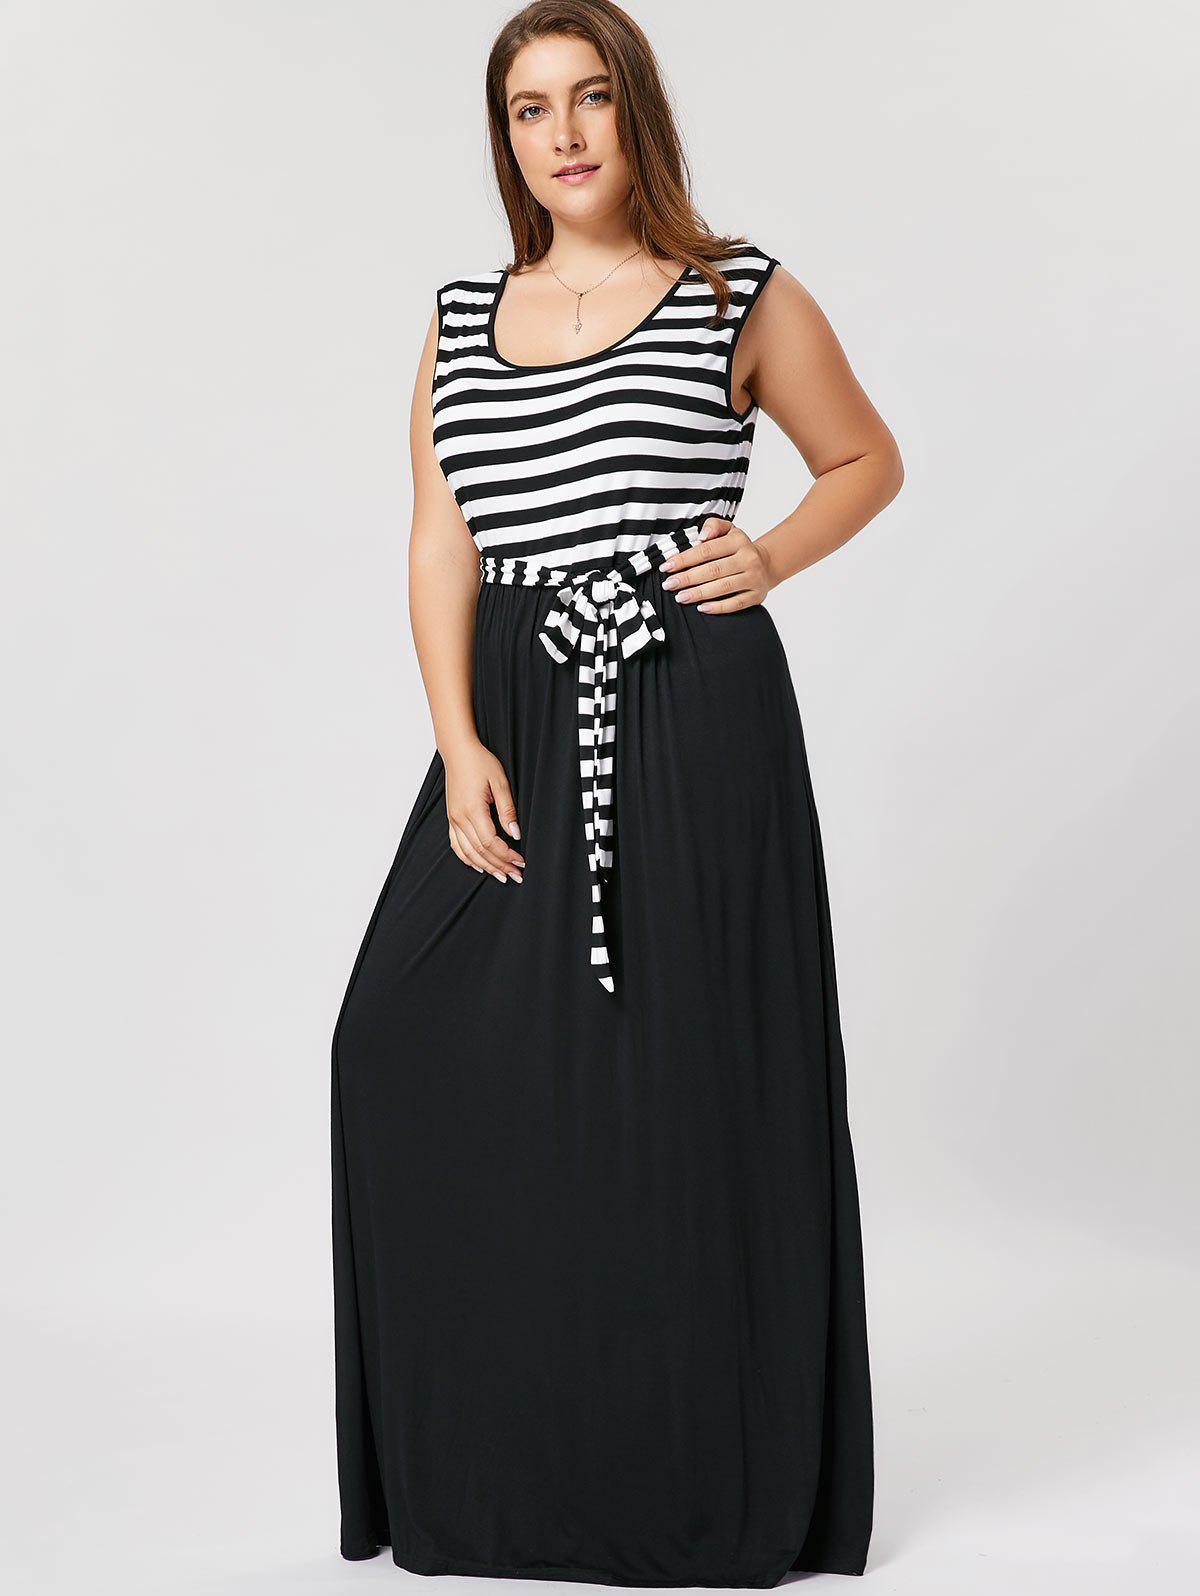 Striped Plus Size Maxi DressWOMEN<br><br>Size: XL; Color: BLACK; Style: Casual; Material: Cotton Blend; Silhouette: A-Line; Dresses Length: Ankle-Length; Neckline: Scoop Neck; Sleeve Length: Sleeveless; Pattern Type: Striped; With Belt: Yes; Season: Fall,Spring,Summer; Weight: 0.6200kg; Package Contents: 1 x Dress  1 x Belt;